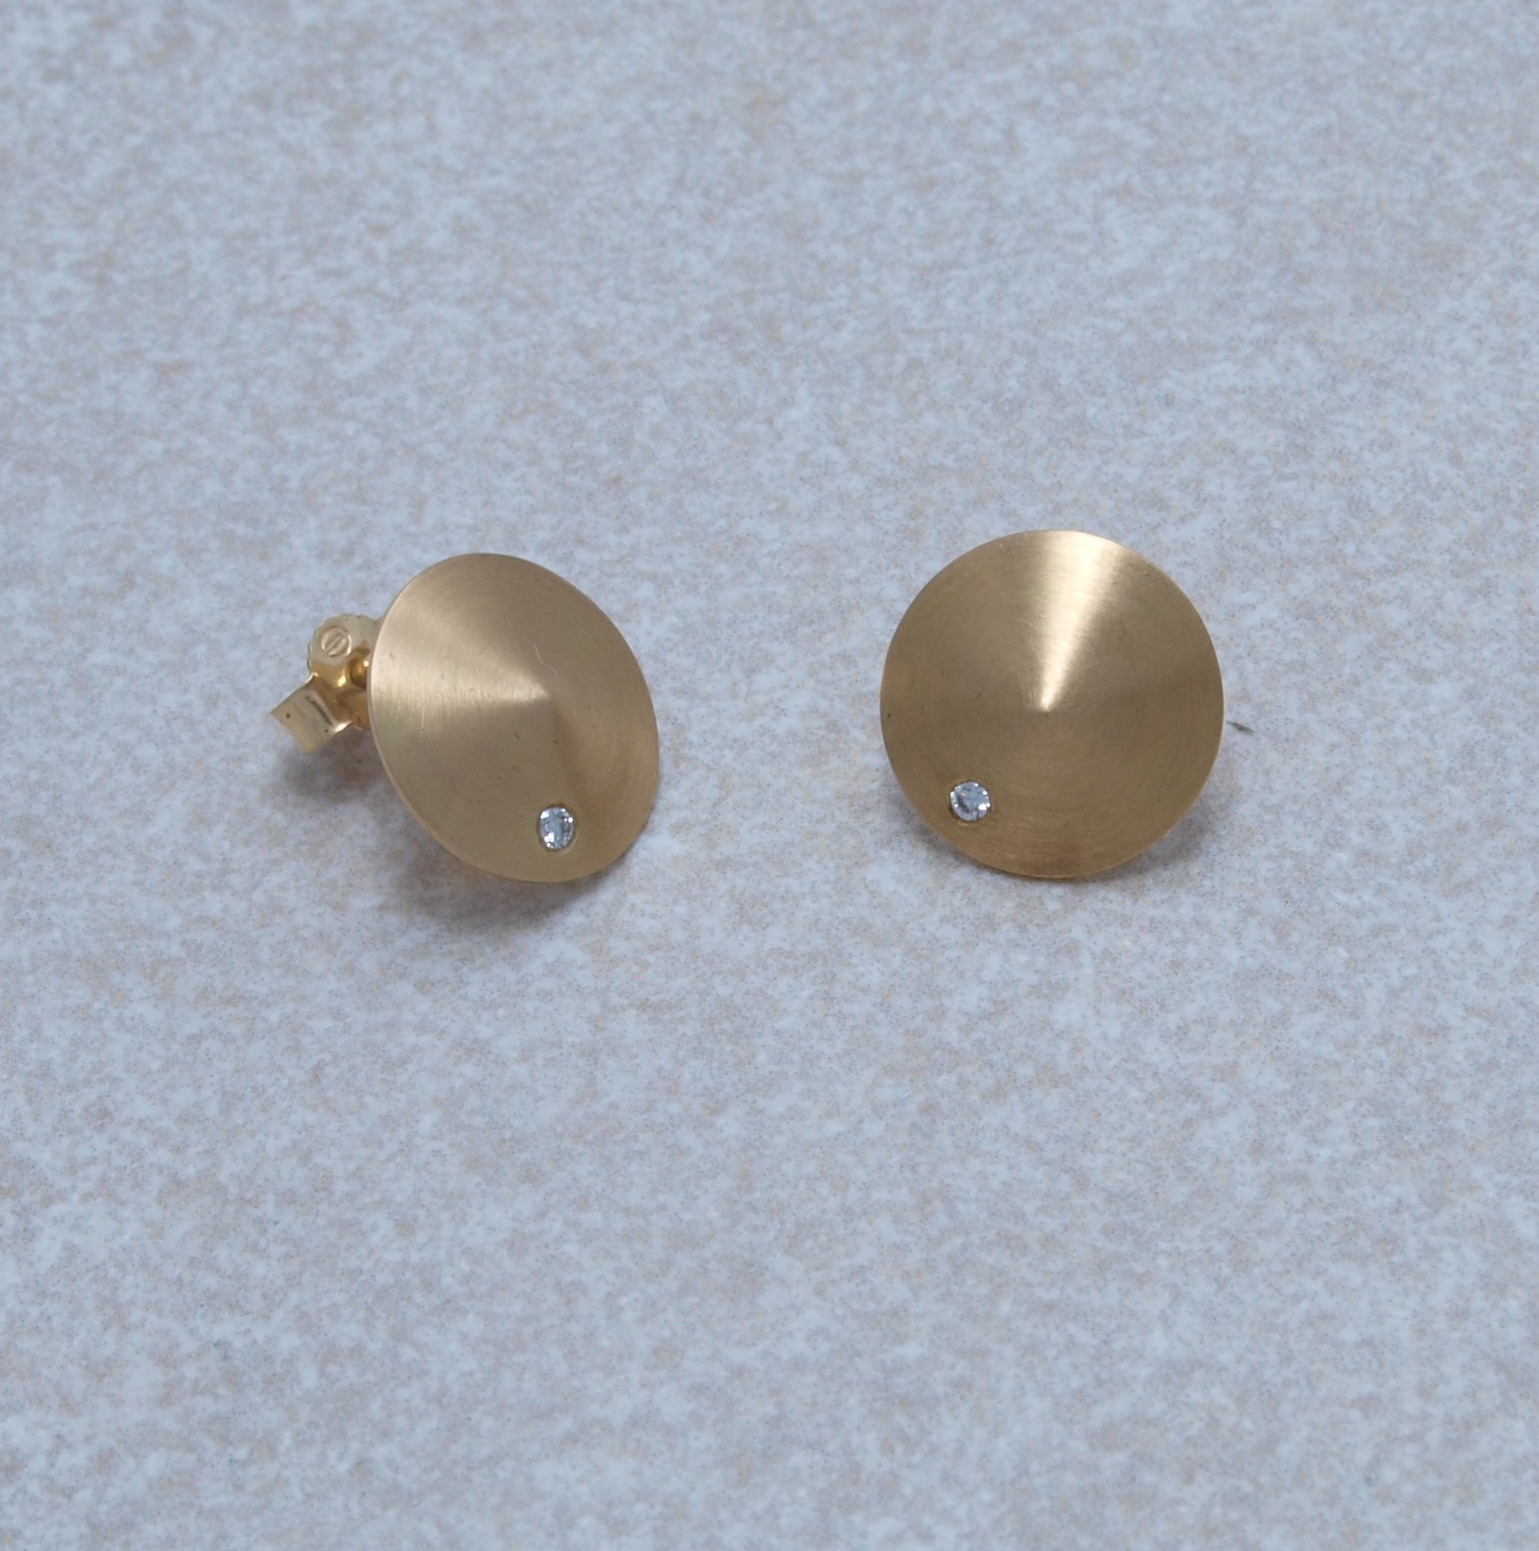 Goldkegel mit Brillanten